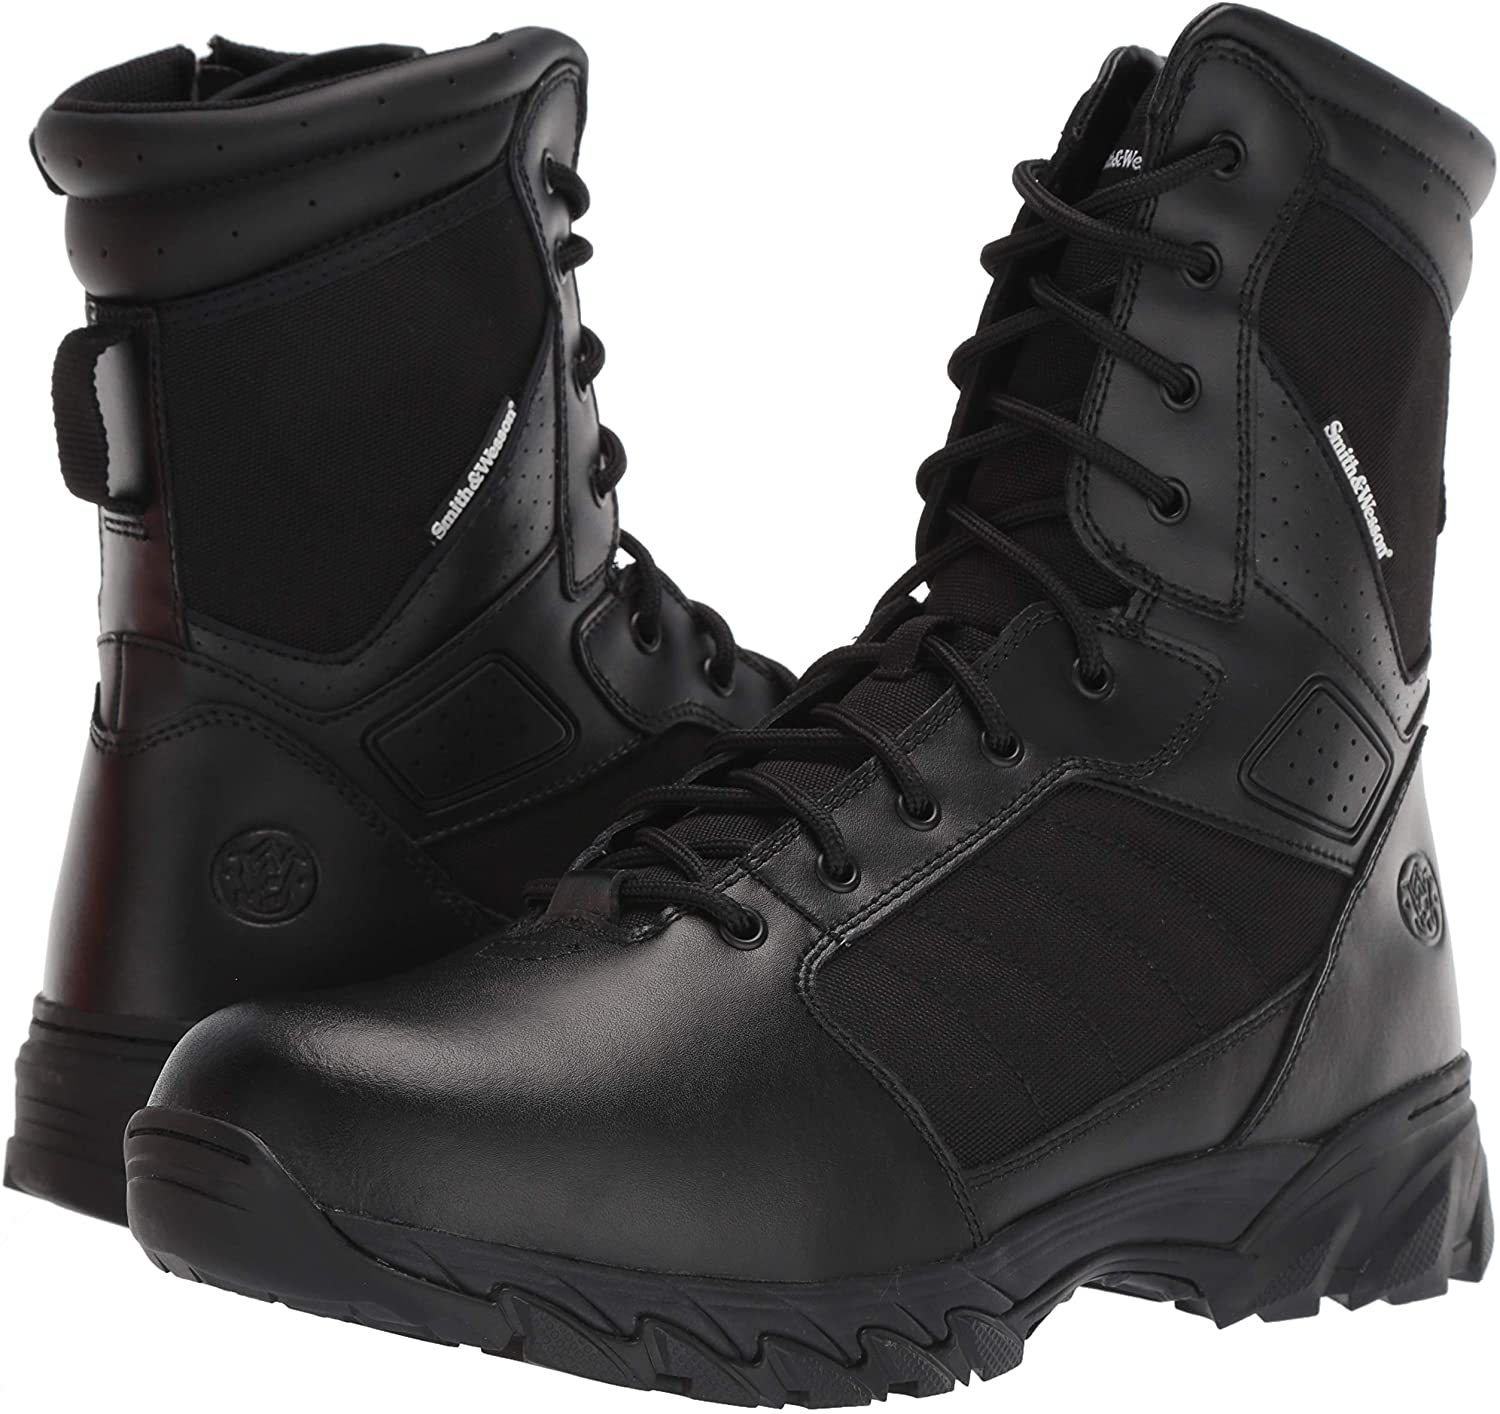 Smith & Wesson Men's Breach 2.0 Tactical Size Zip Boots are affordable, durable boots for EMT workers.